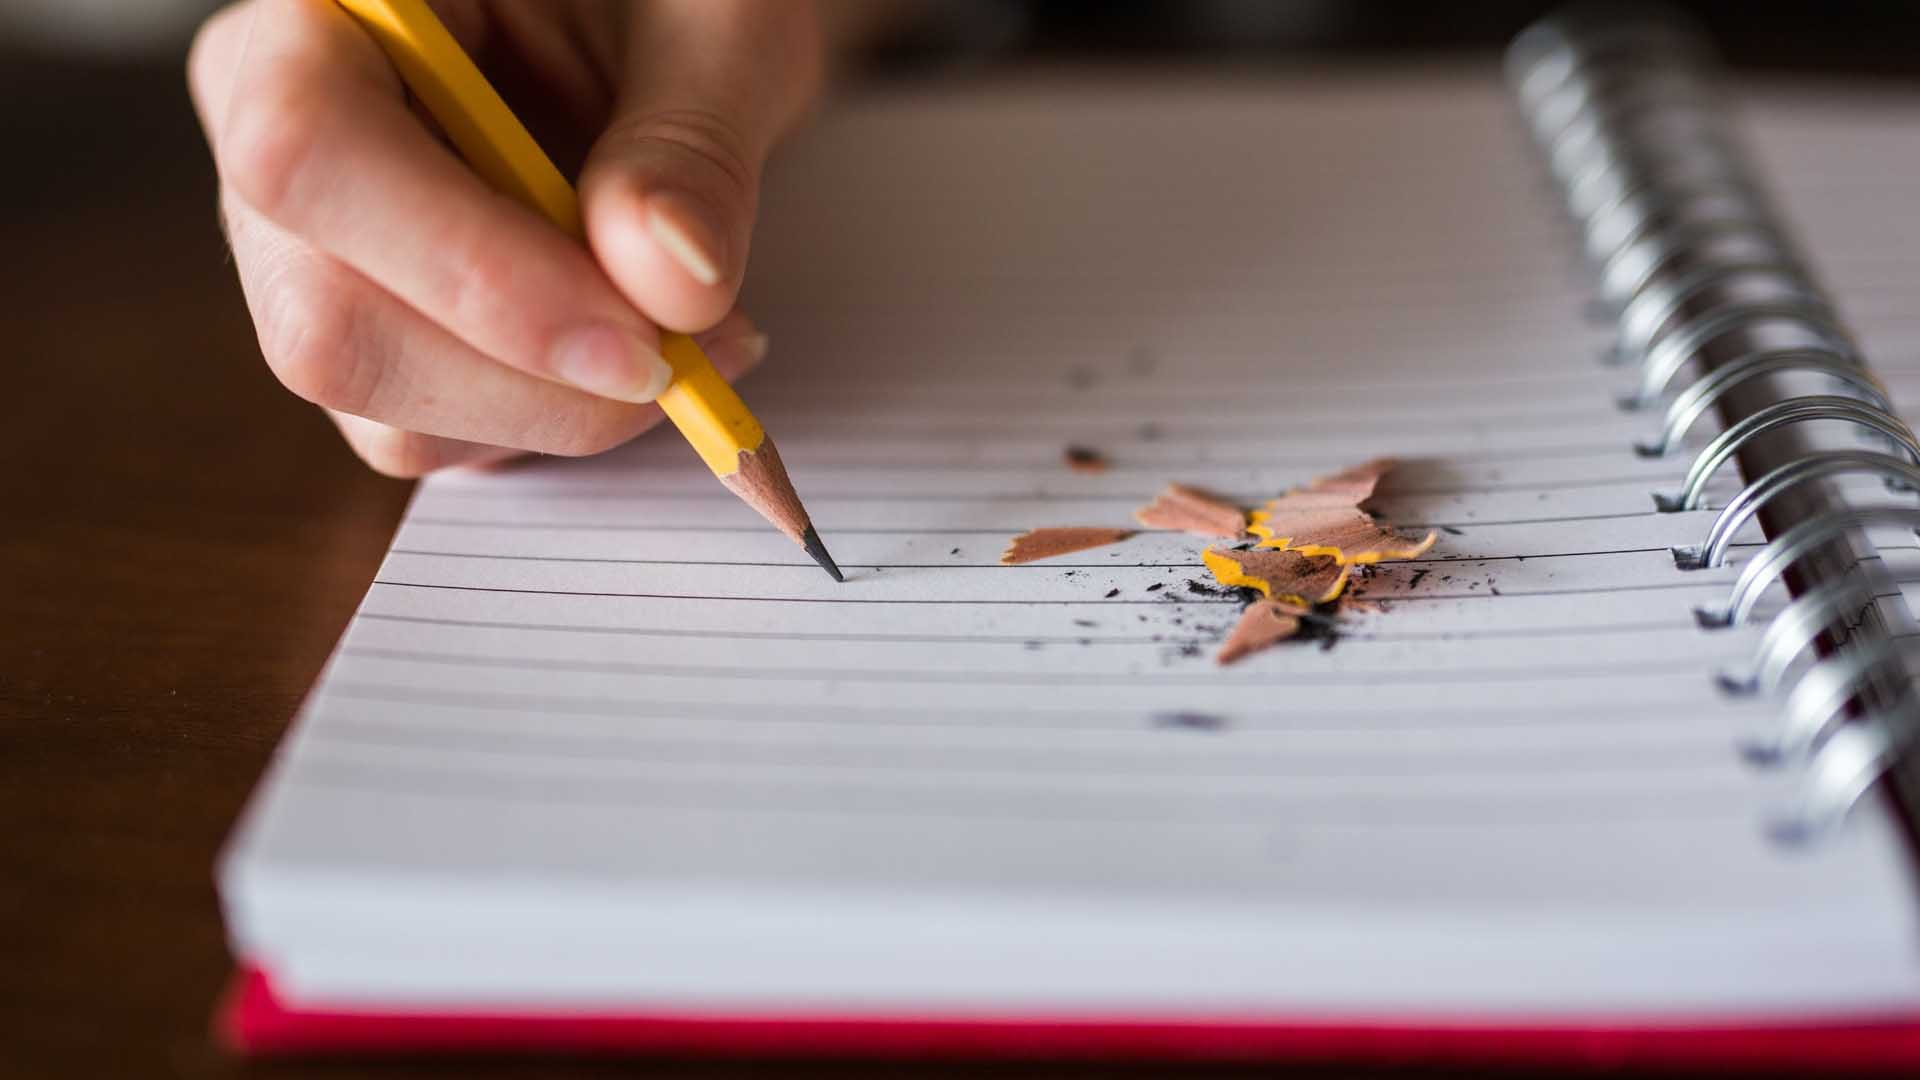 Scriptwriting/screenwriting - notebook with pencil and pencil shavings